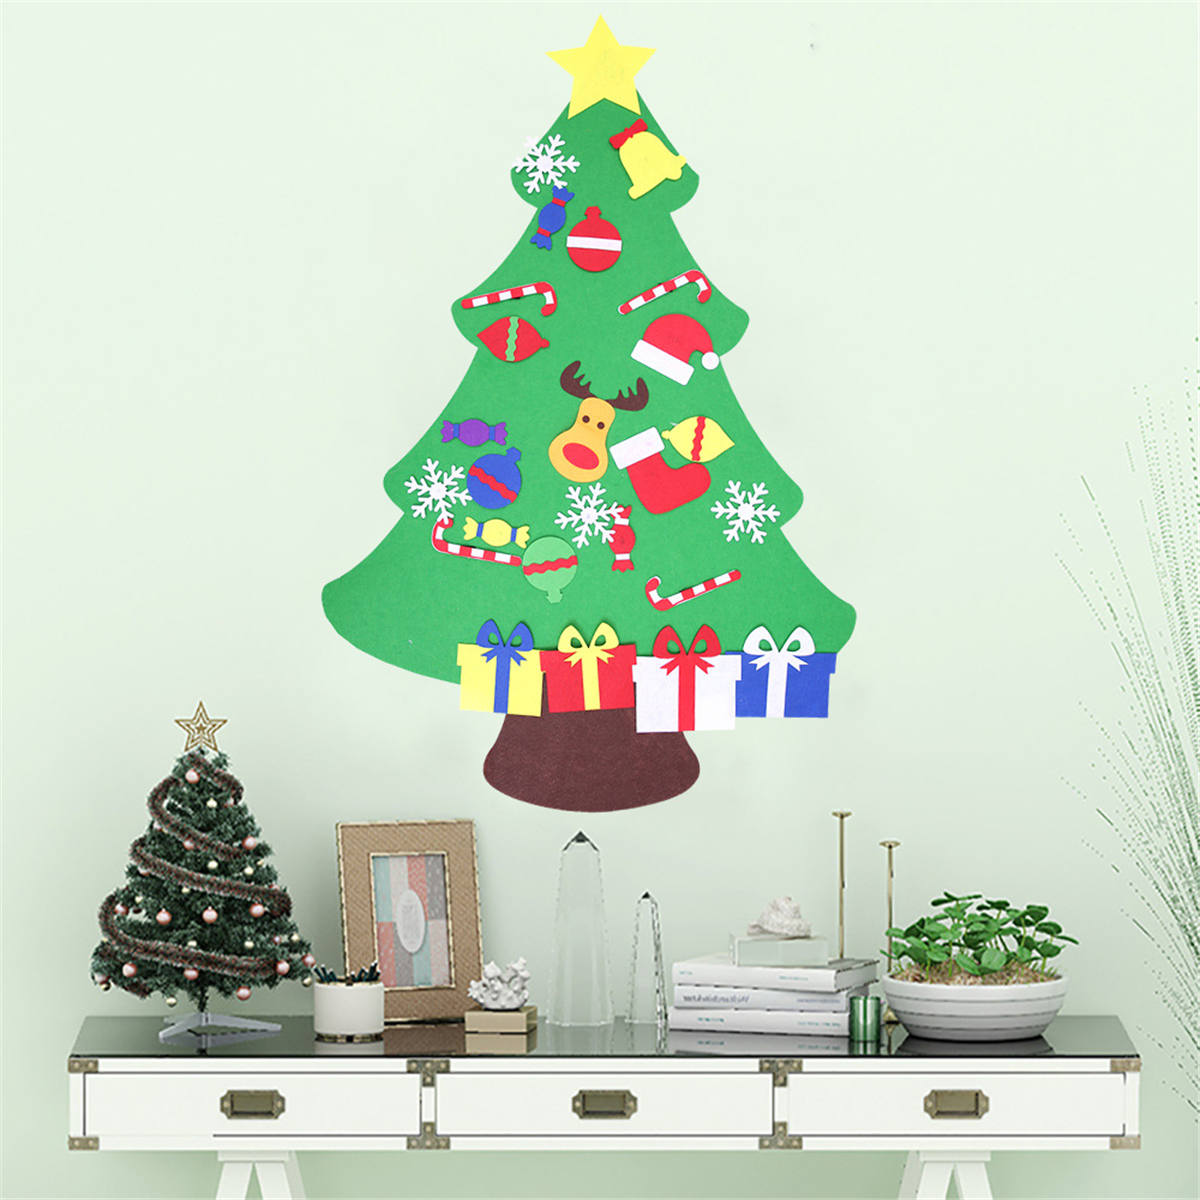 100cm diy christmas deluxe felt tree wall hanging toddler child preschool craft decorations. Black Bedroom Furniture Sets. Home Design Ideas